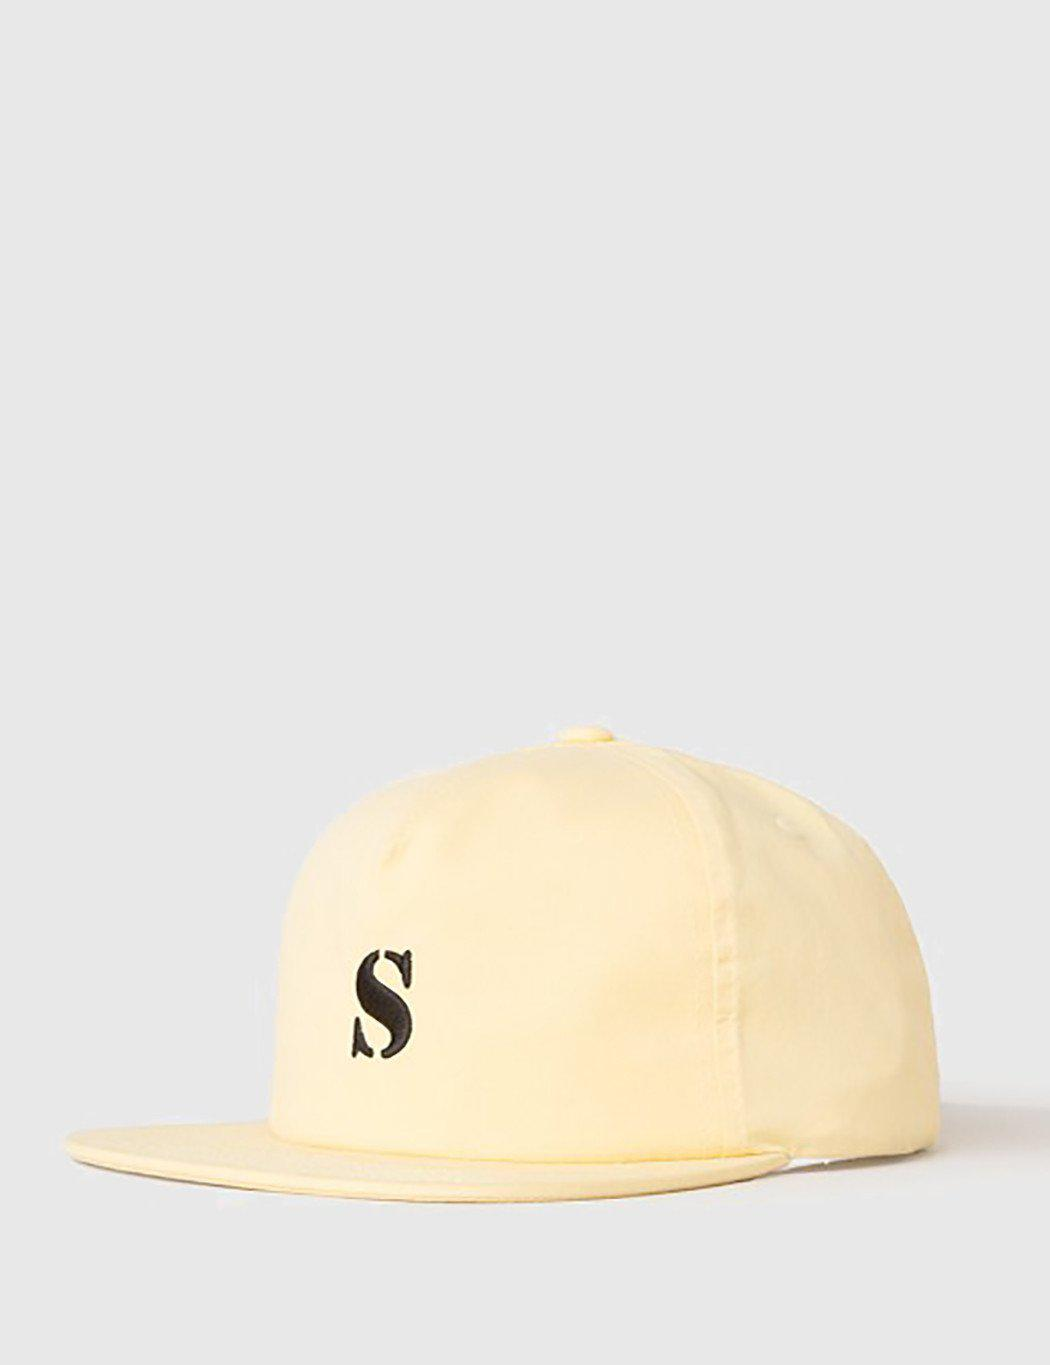 Lyst - Stussy Bio Washed Cap in Yellow for Men 019b0fb1a29